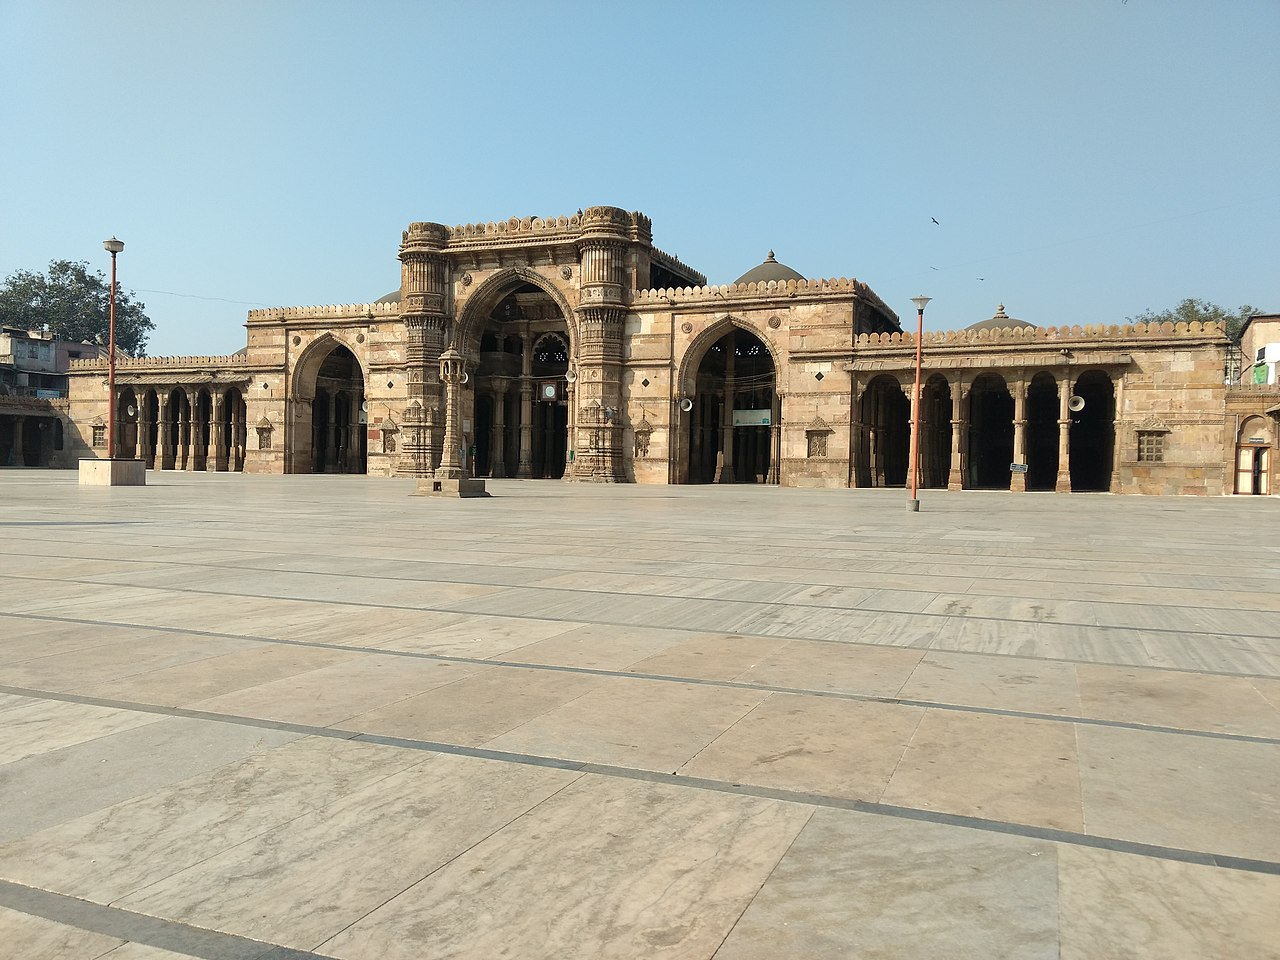 Place To Visit Near Ahmad Shah's Tomb and Mosque-Jama Masjid